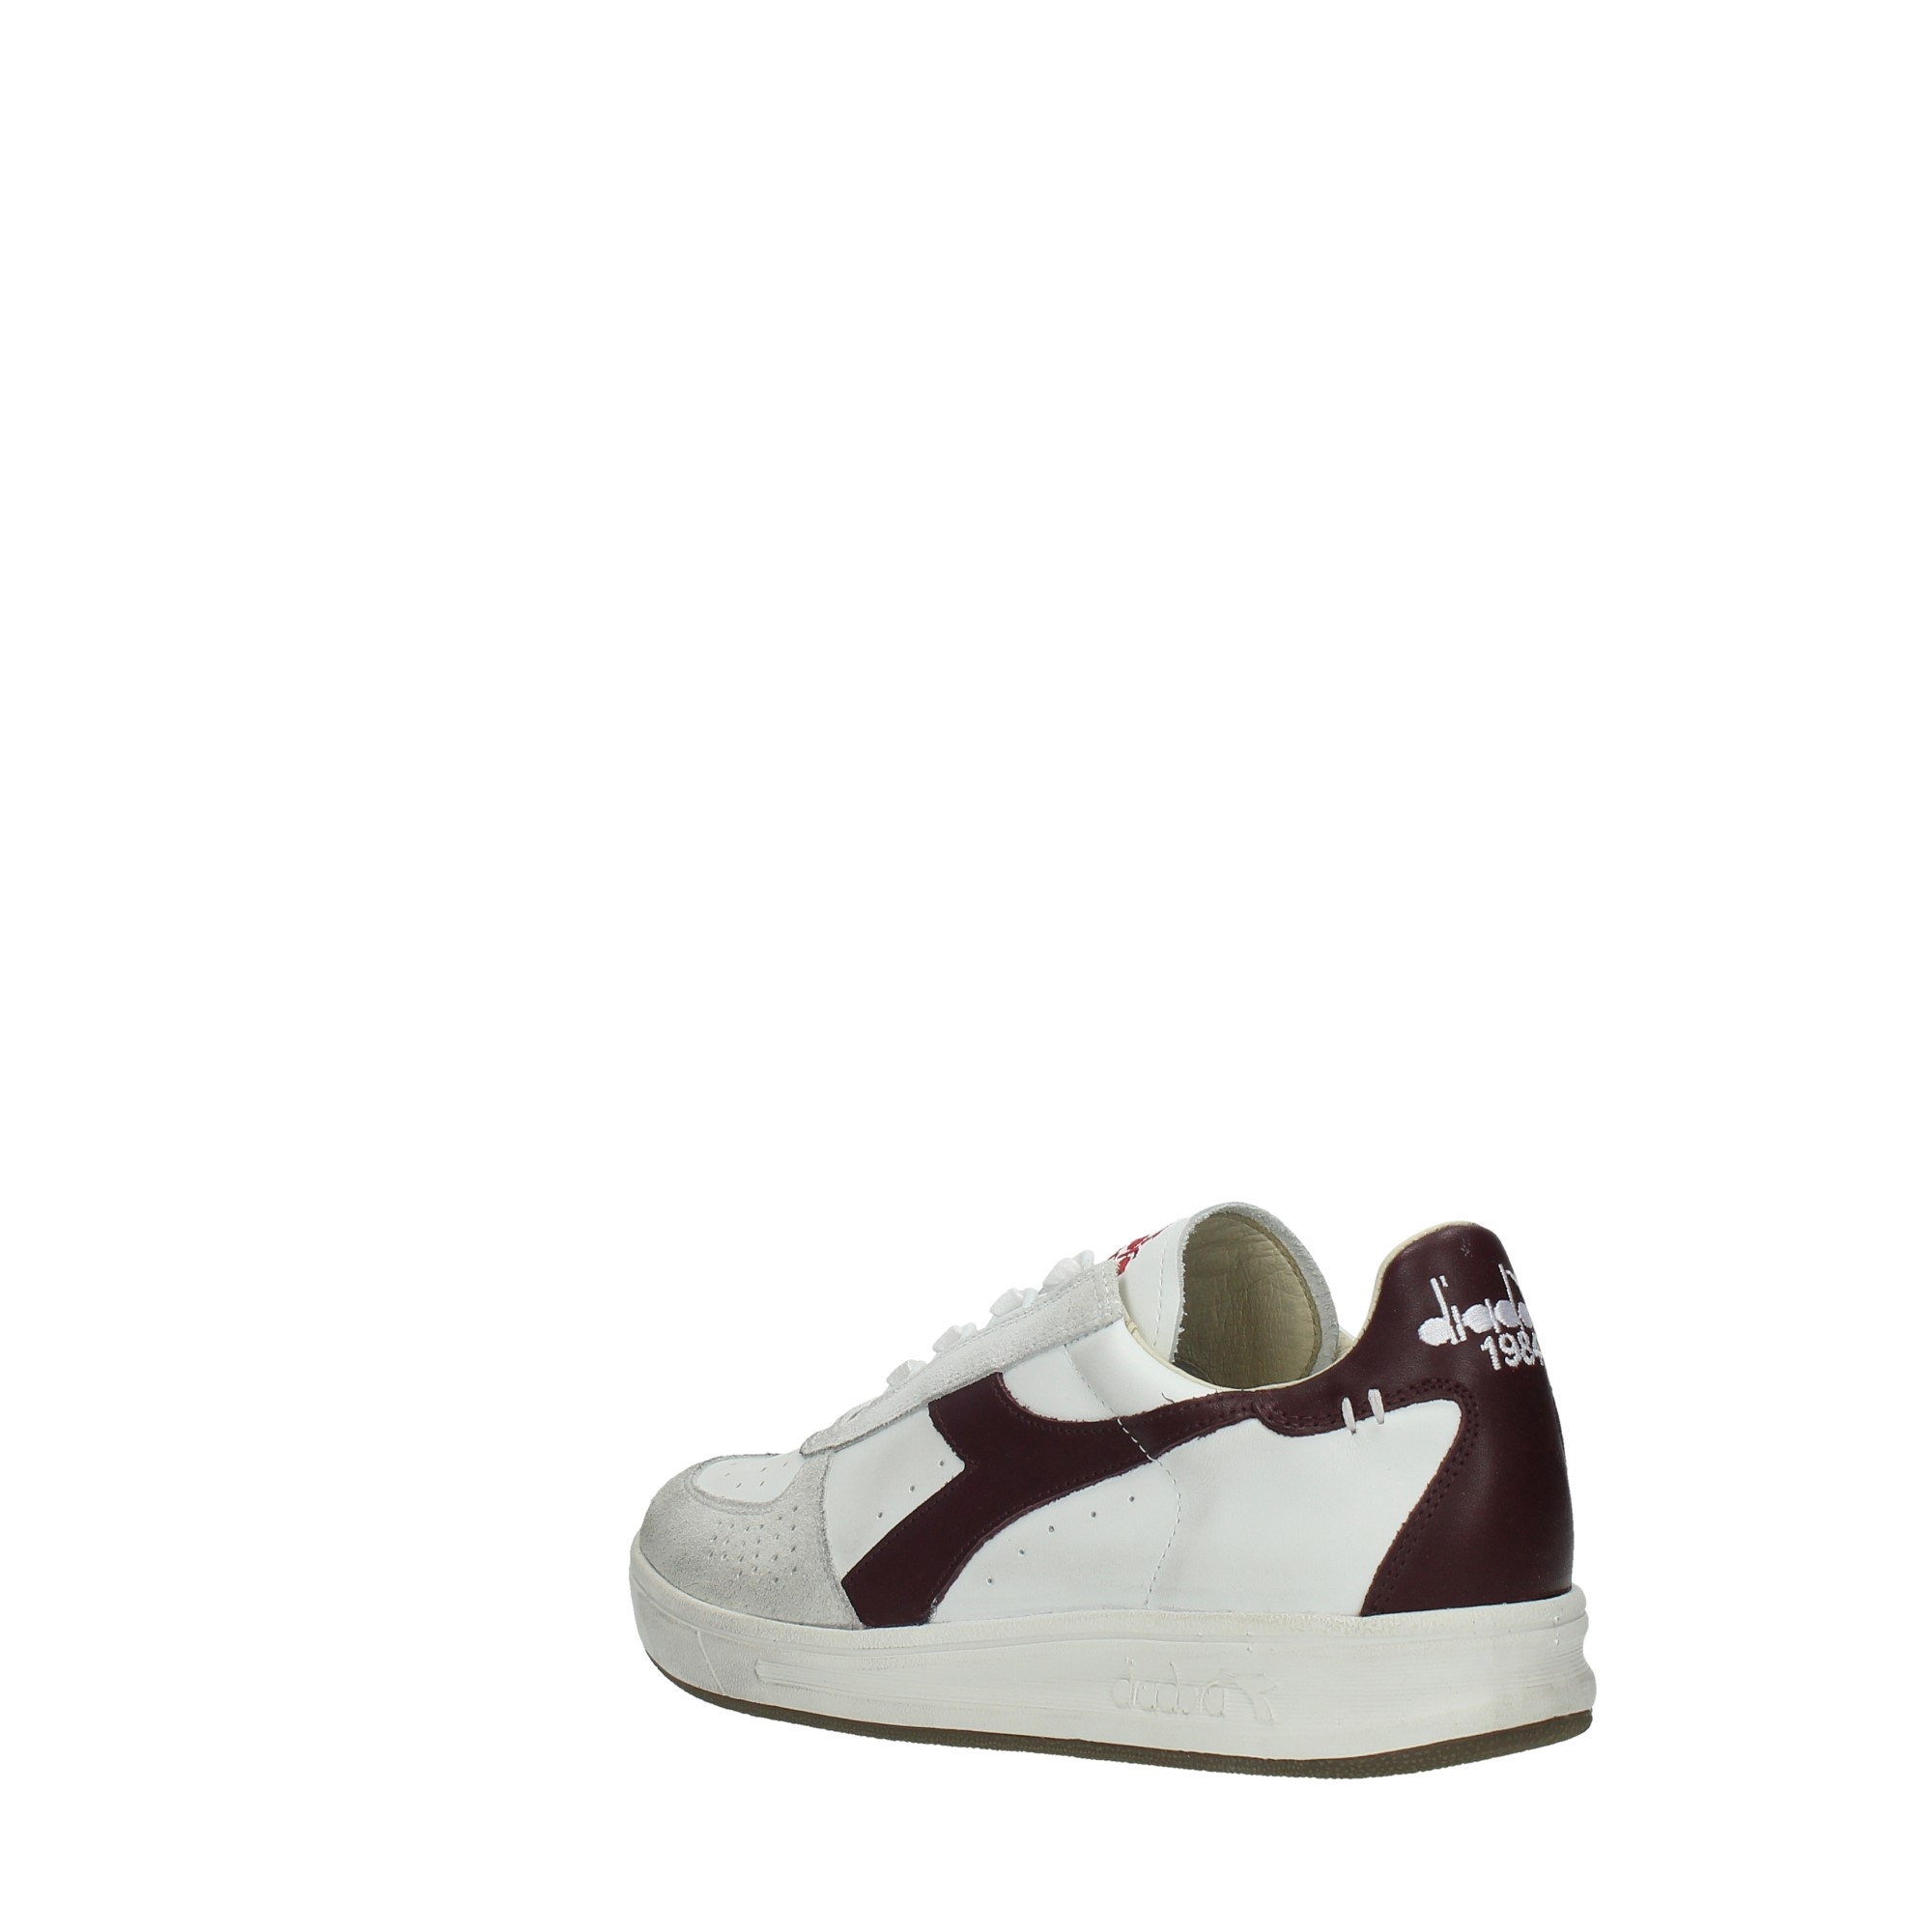 Diadora Heritage Shoes Man Sneakers White 201. 174751